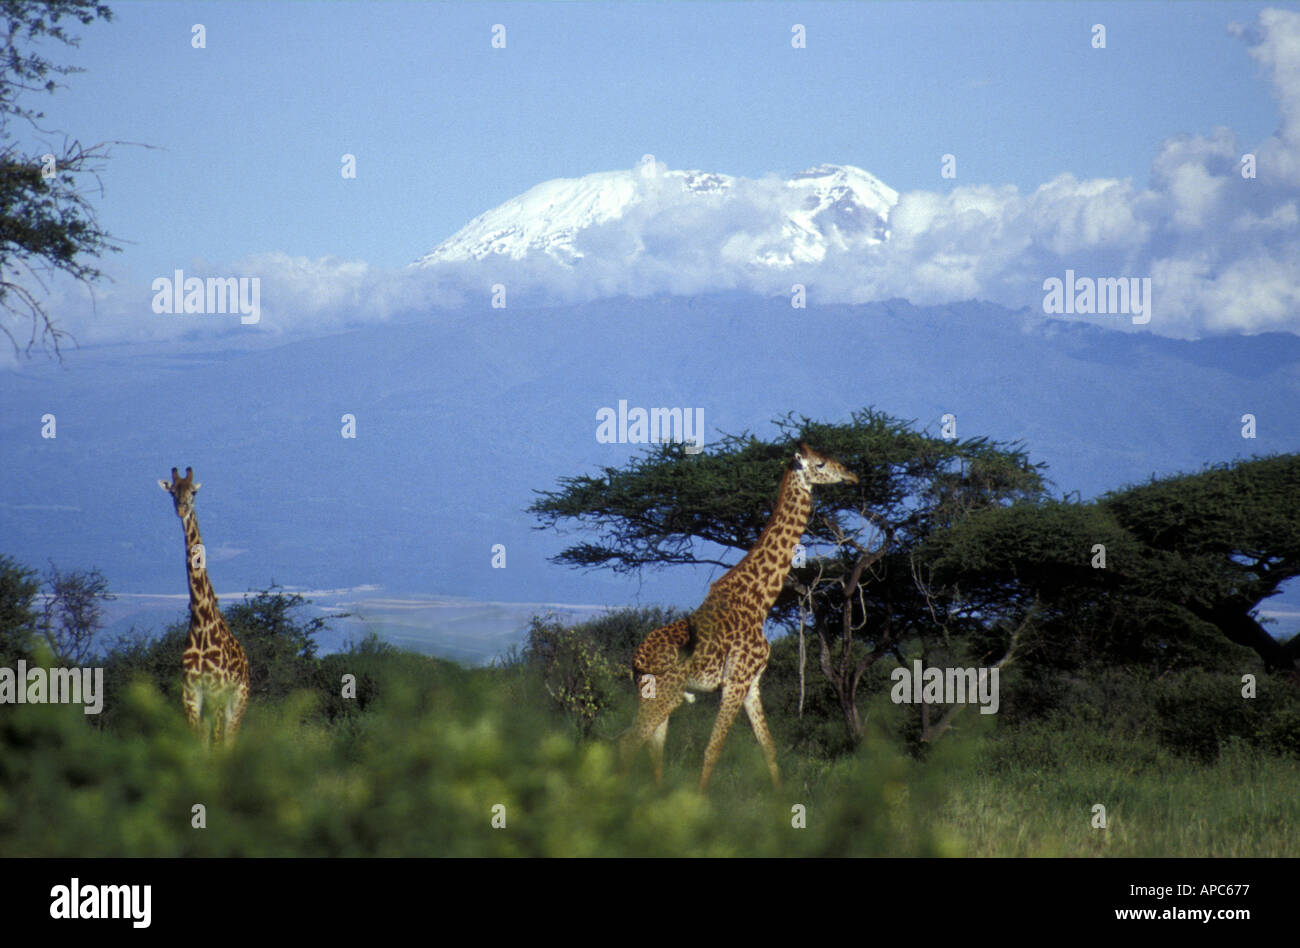 Masai or Common giraffe in Arusha National Park northern Tanzania with Kilimanjaro in the background - Stock Image